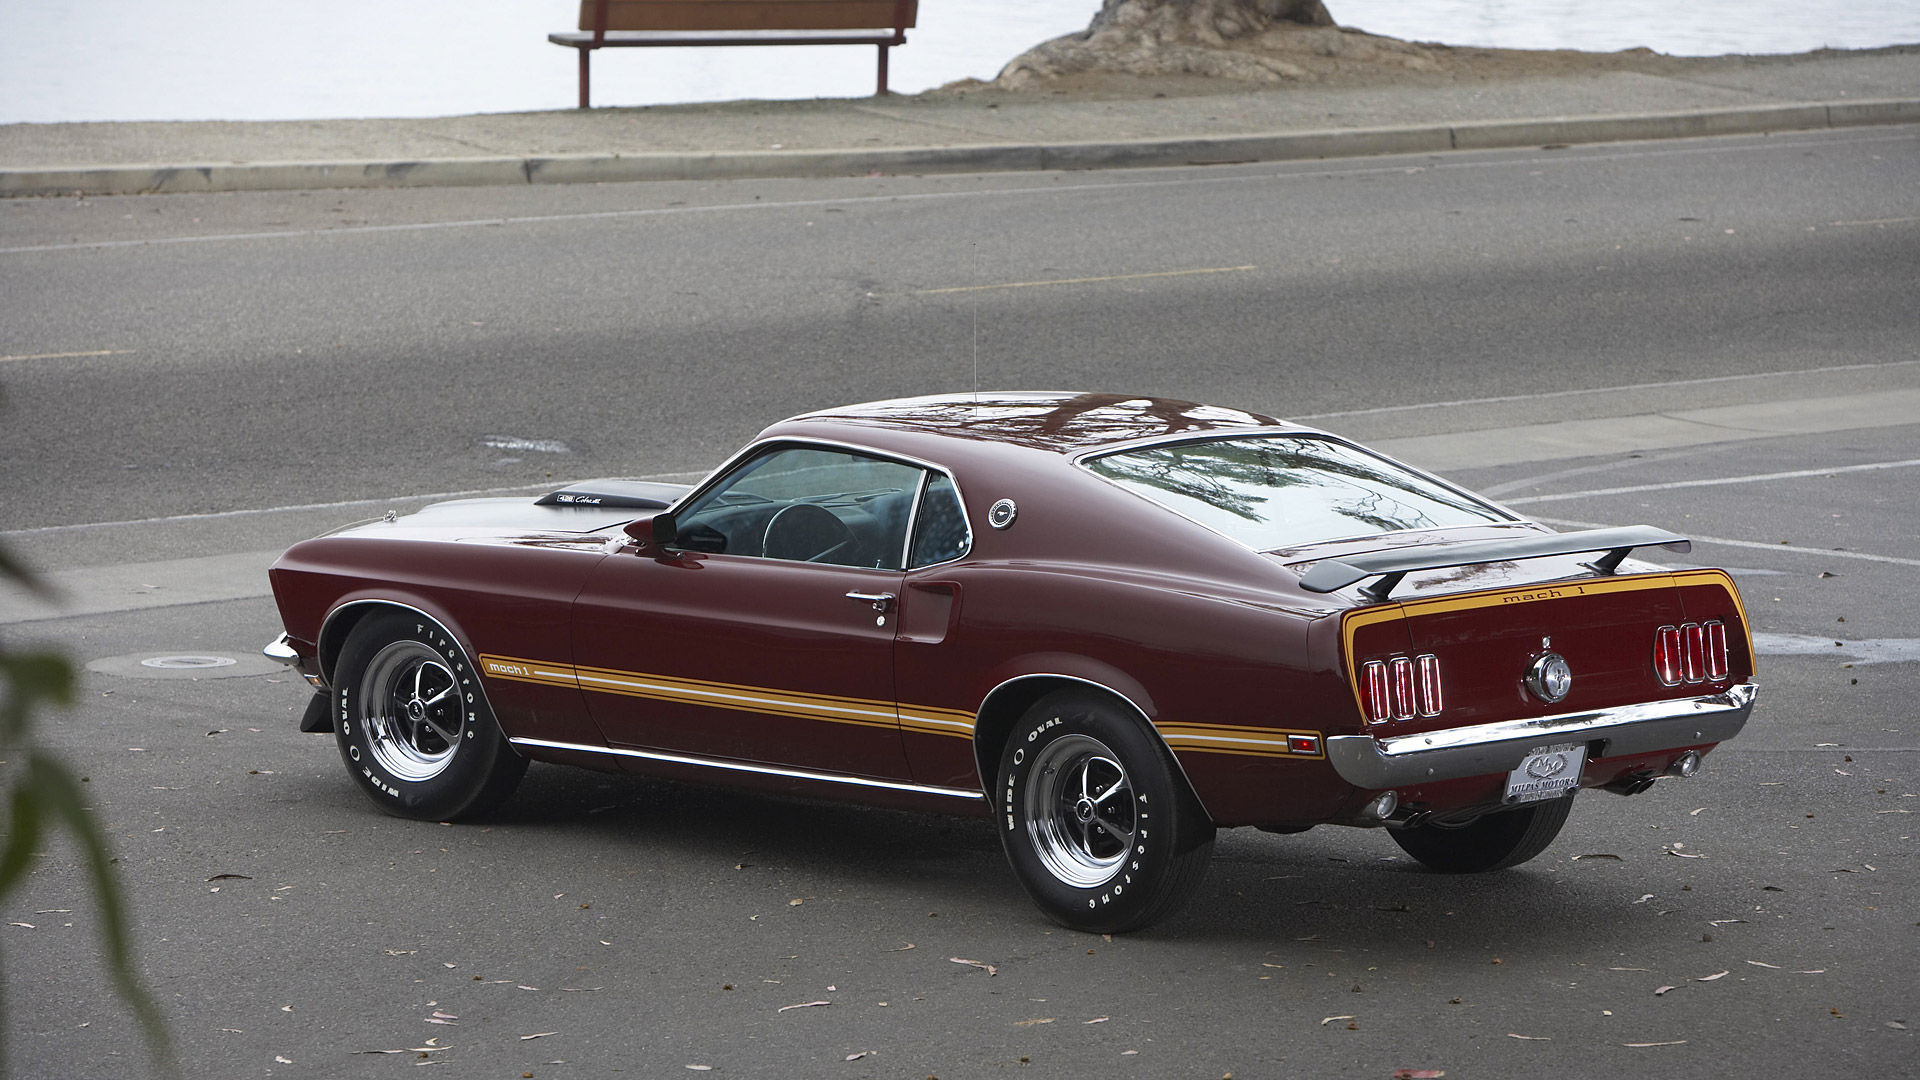 1969 Ford Mustang 428 Super Cobra Jet